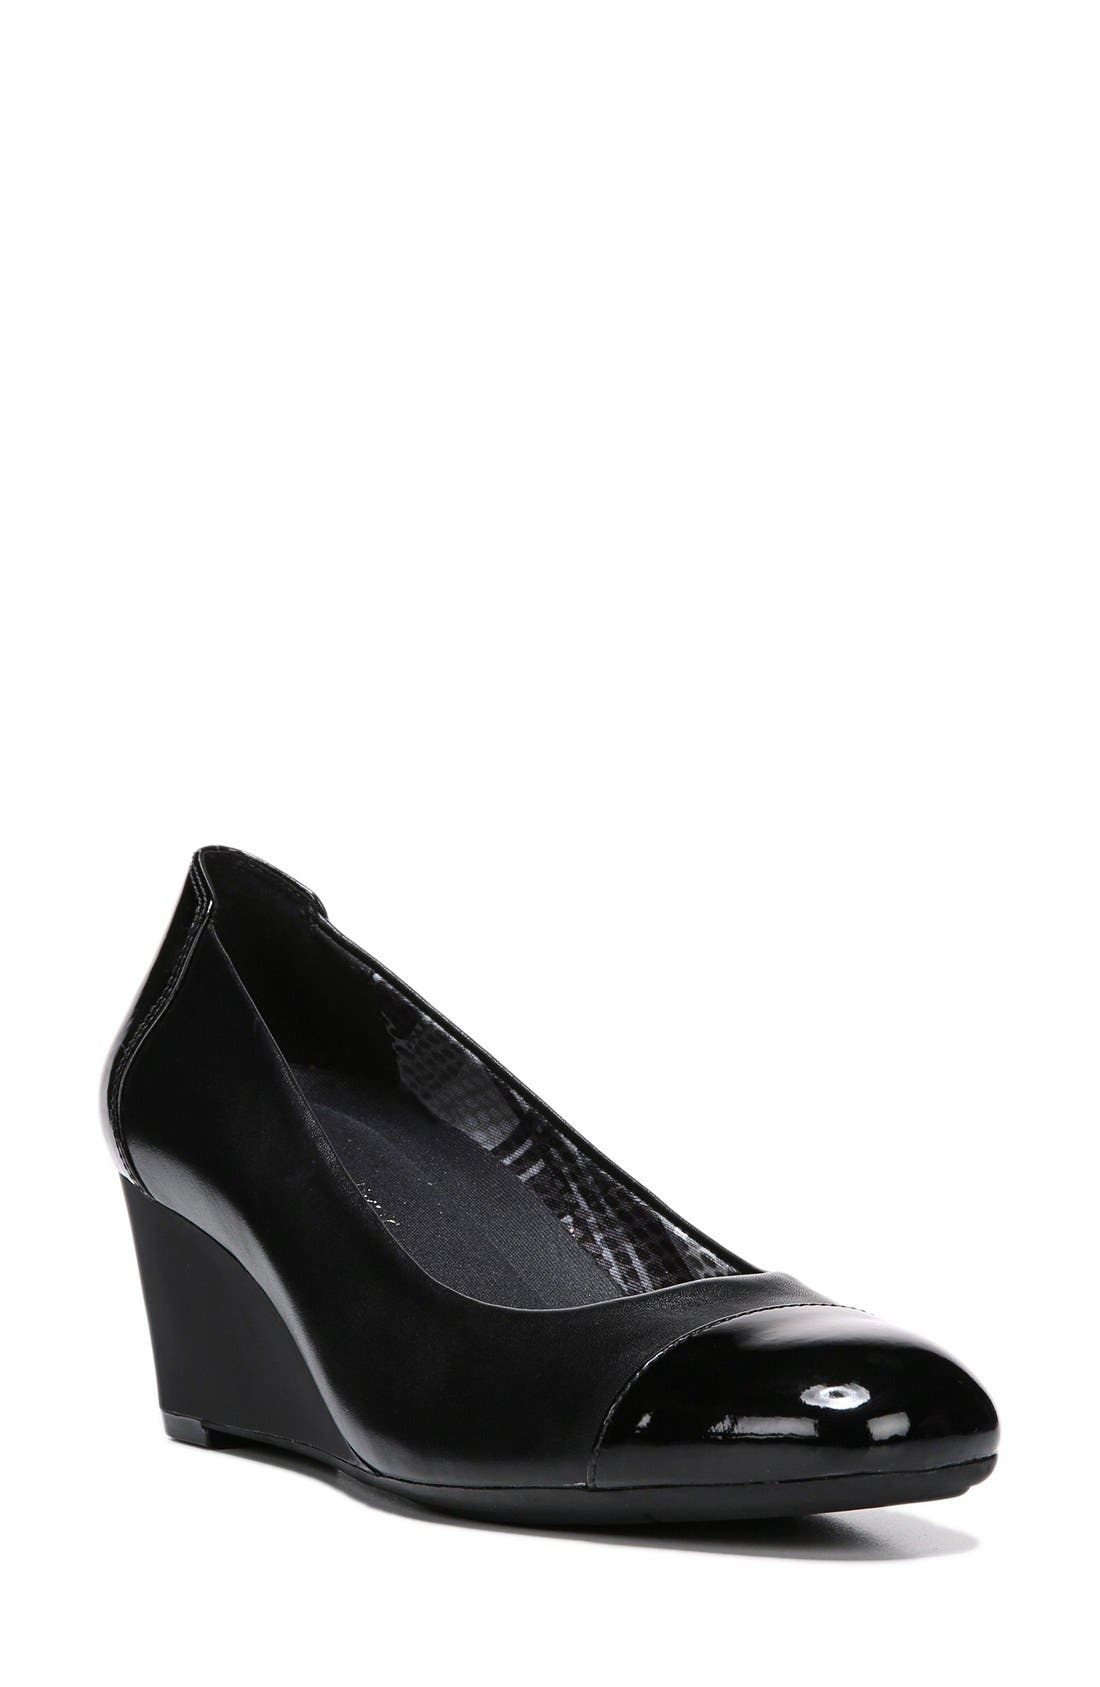 'Necile' Wedge Pump,                             Main thumbnail 1, color,                             Black Leather